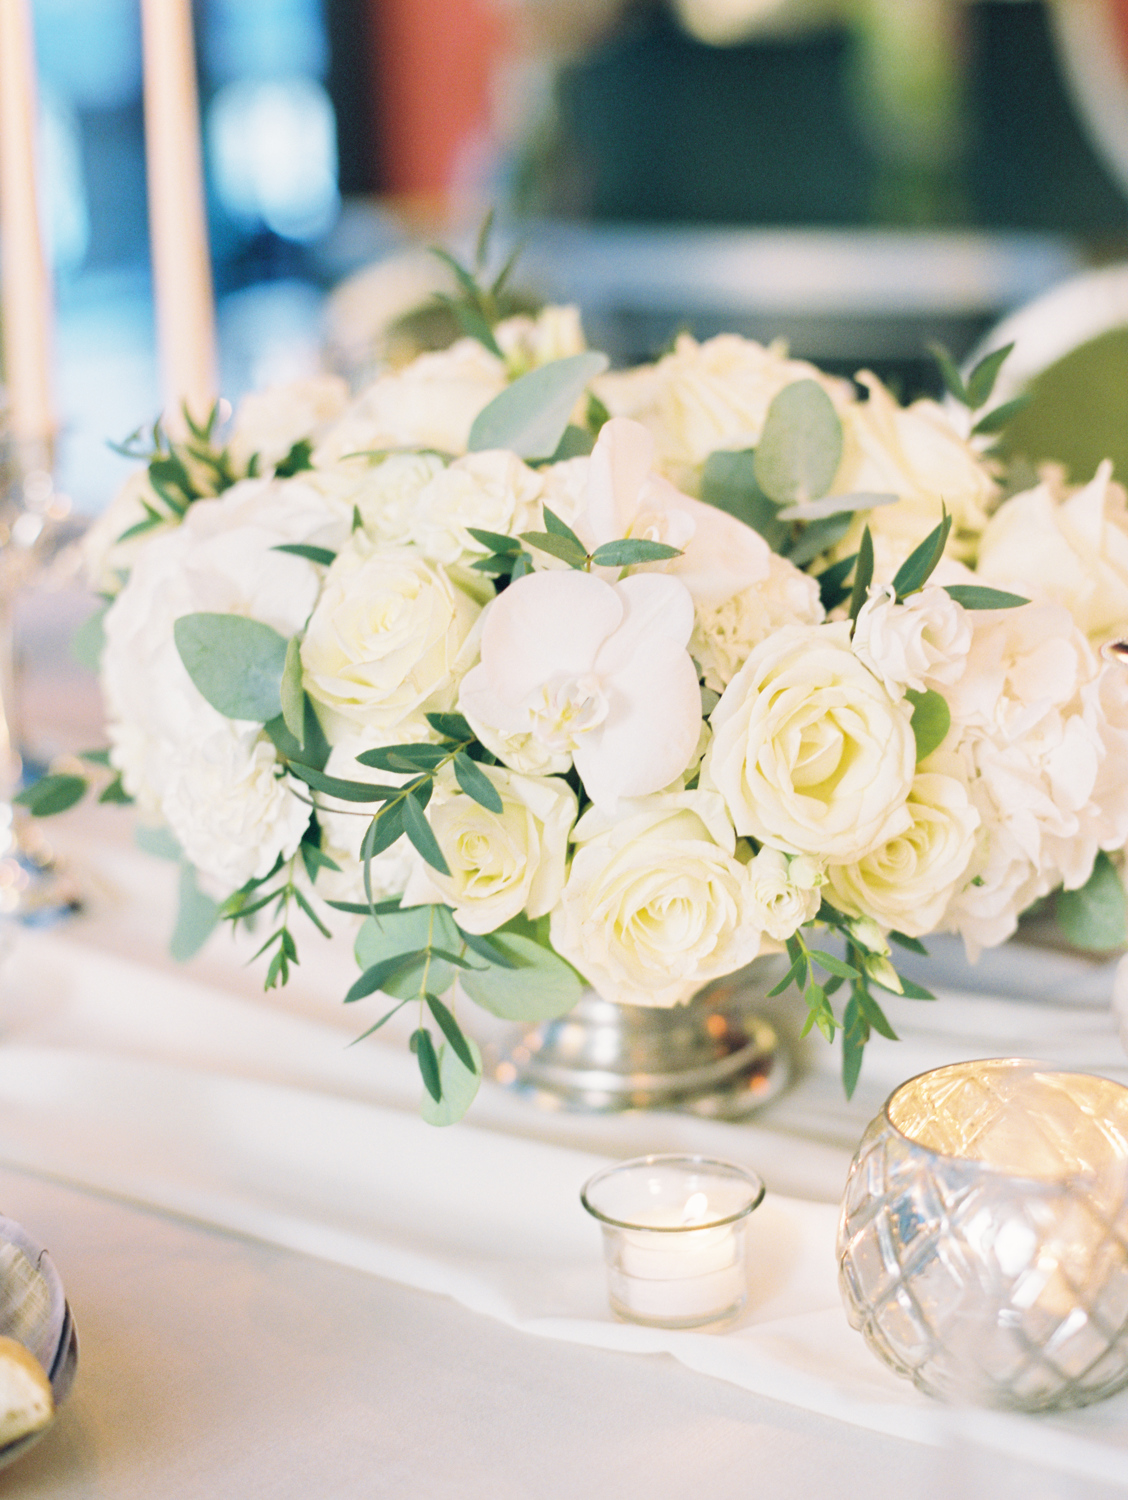 Beautiful white flowers wedding decor castadiva resort lake como